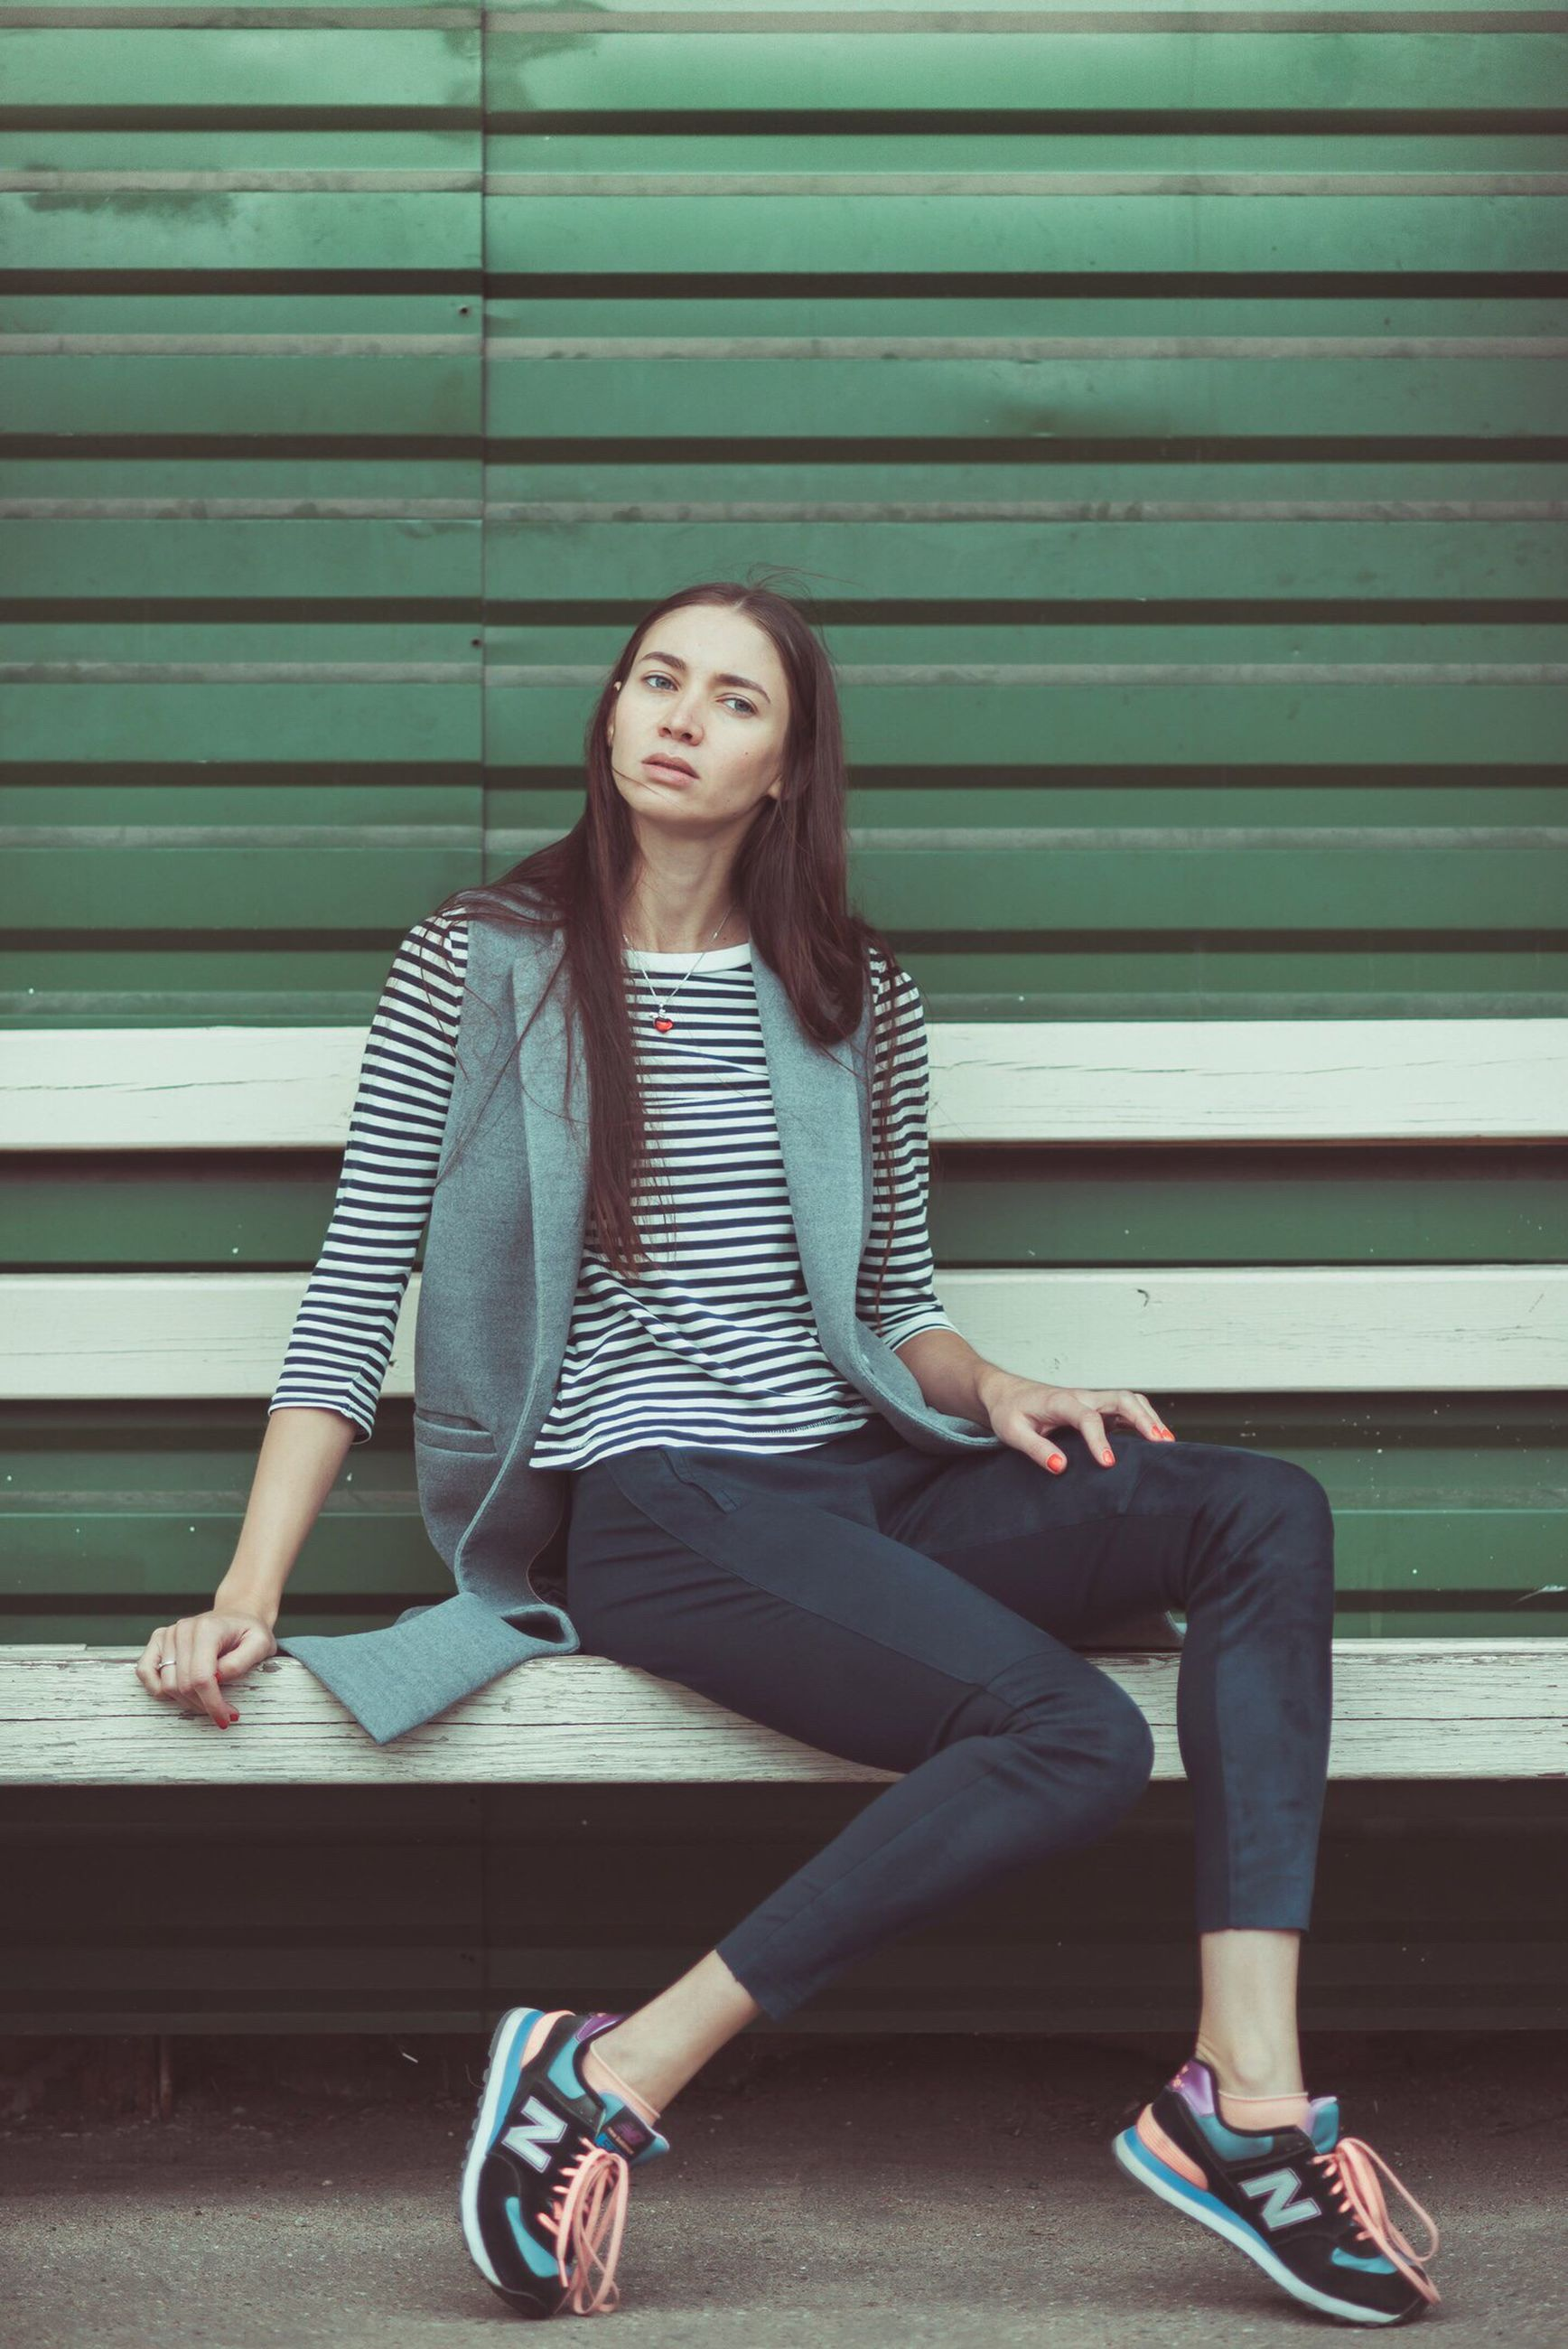 young women, young adult, sitting, full length, casual clothing, lifestyles, leisure activity, person, long hair, cross-legged, looking at camera, day, medium-length hair, well-dressed, fashionable